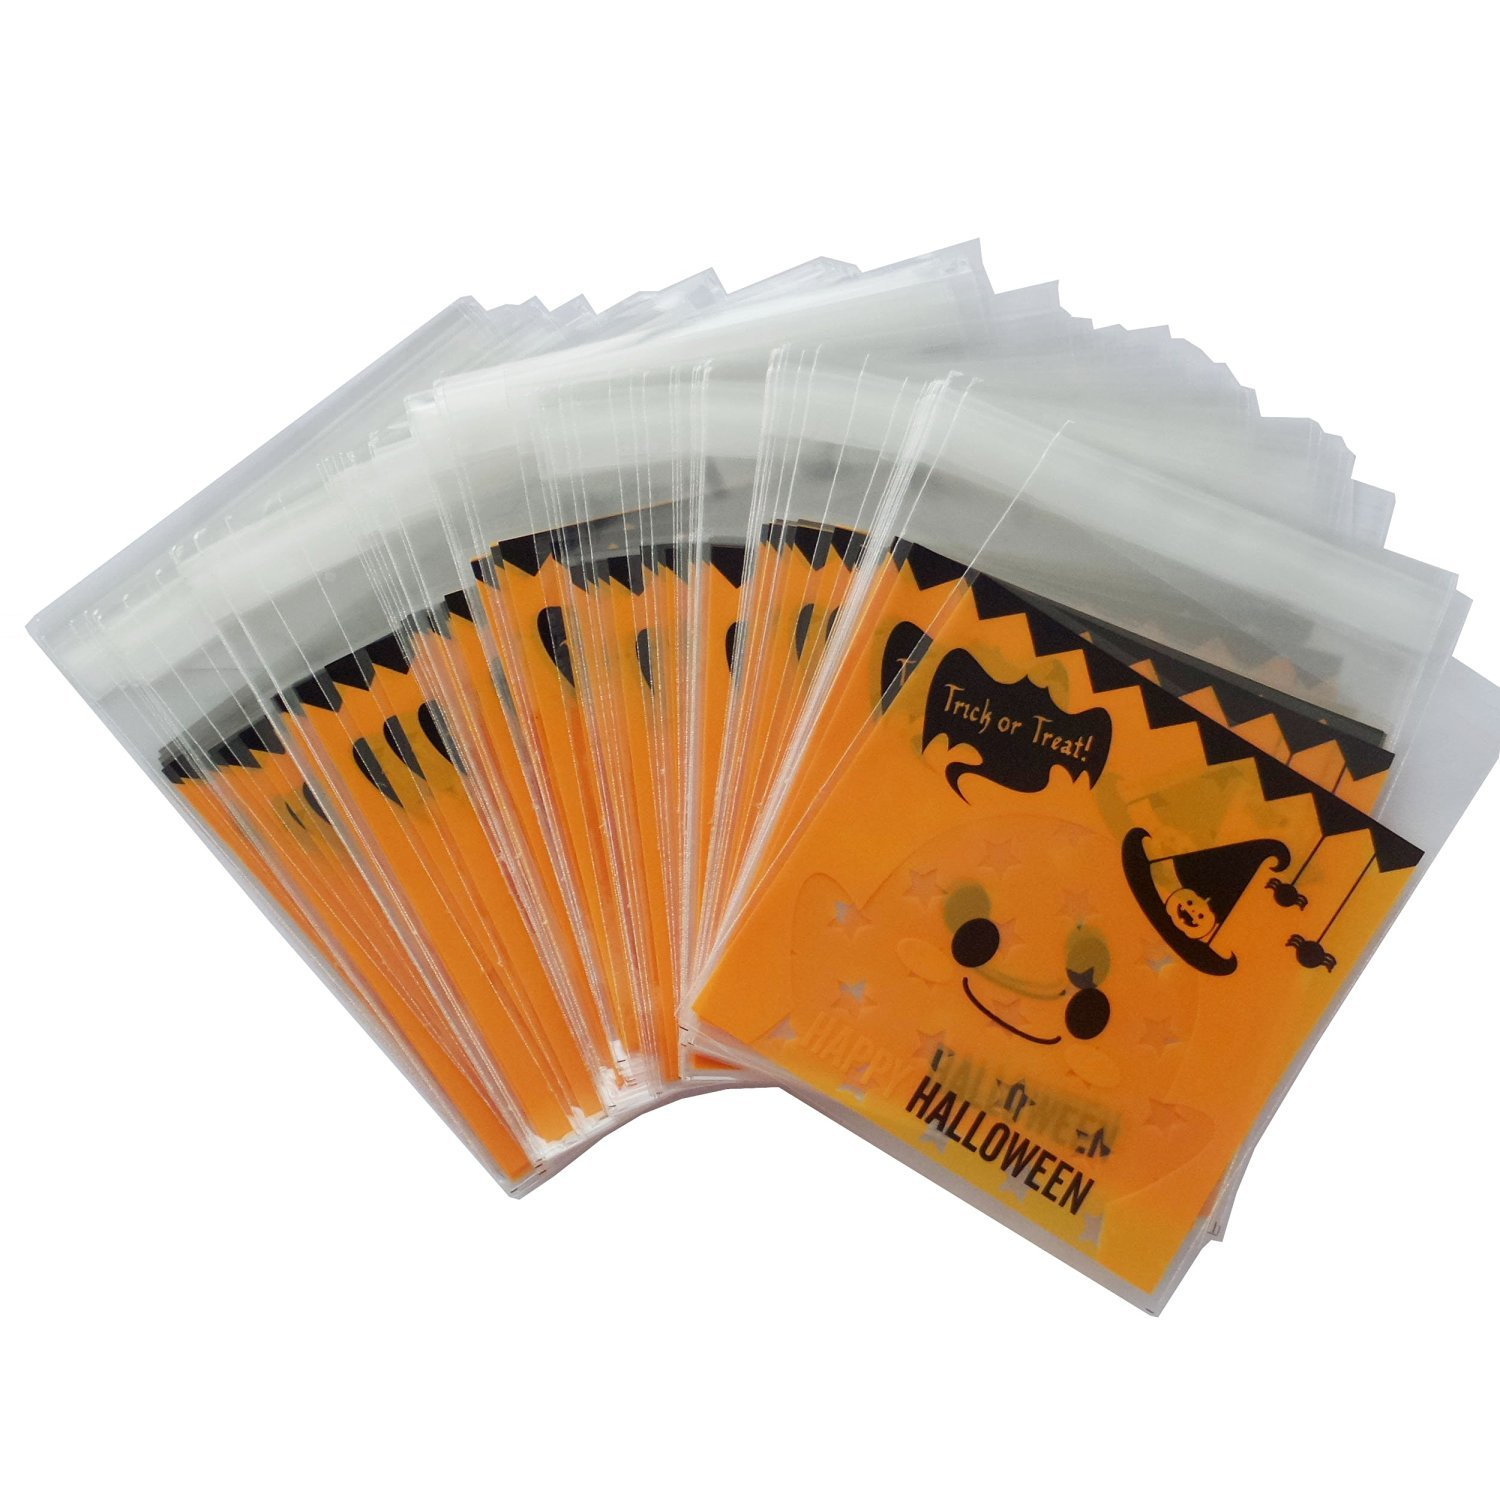 Fashionclubs 100pcs Self-Adhesive Halloween Pumpkins Plastic Bags For Cookie/Bakery/Candy/Biscuit (Pumpkins) Gift Opp Bag